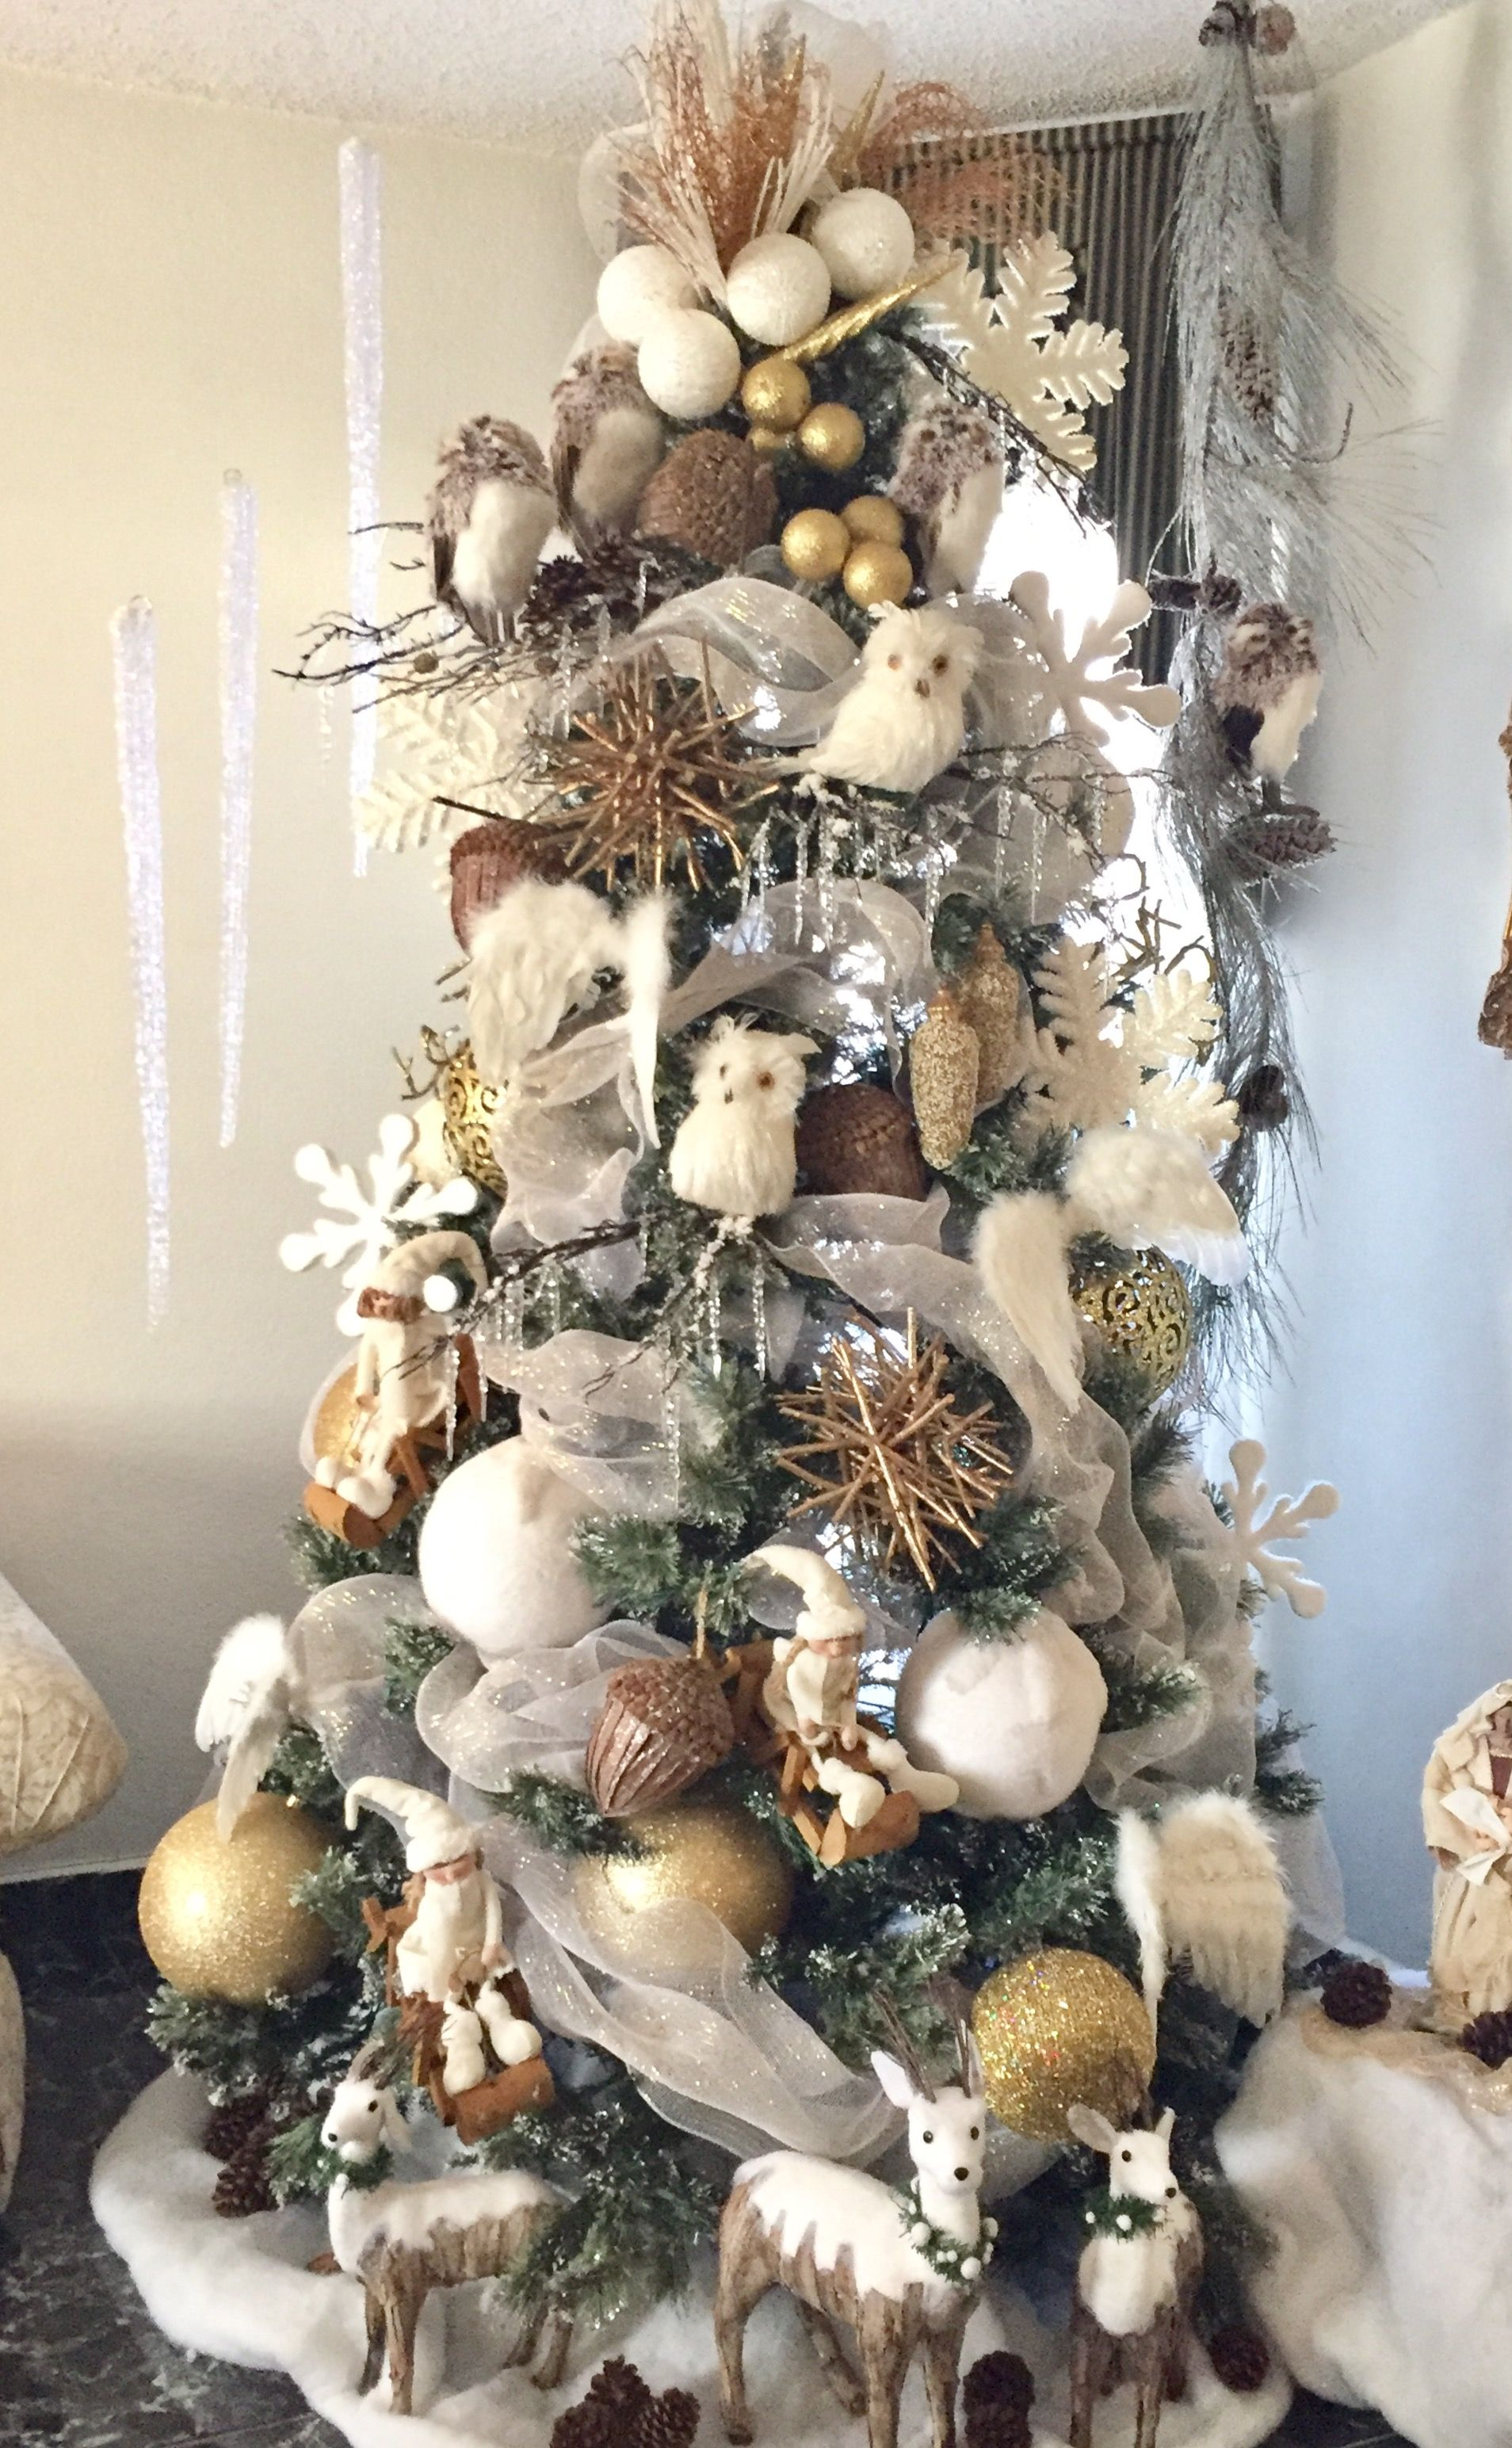 Pin By Adrienne On Christmas Christmas Tree Rustic Christmas Tree Christmas Decorations Rustic